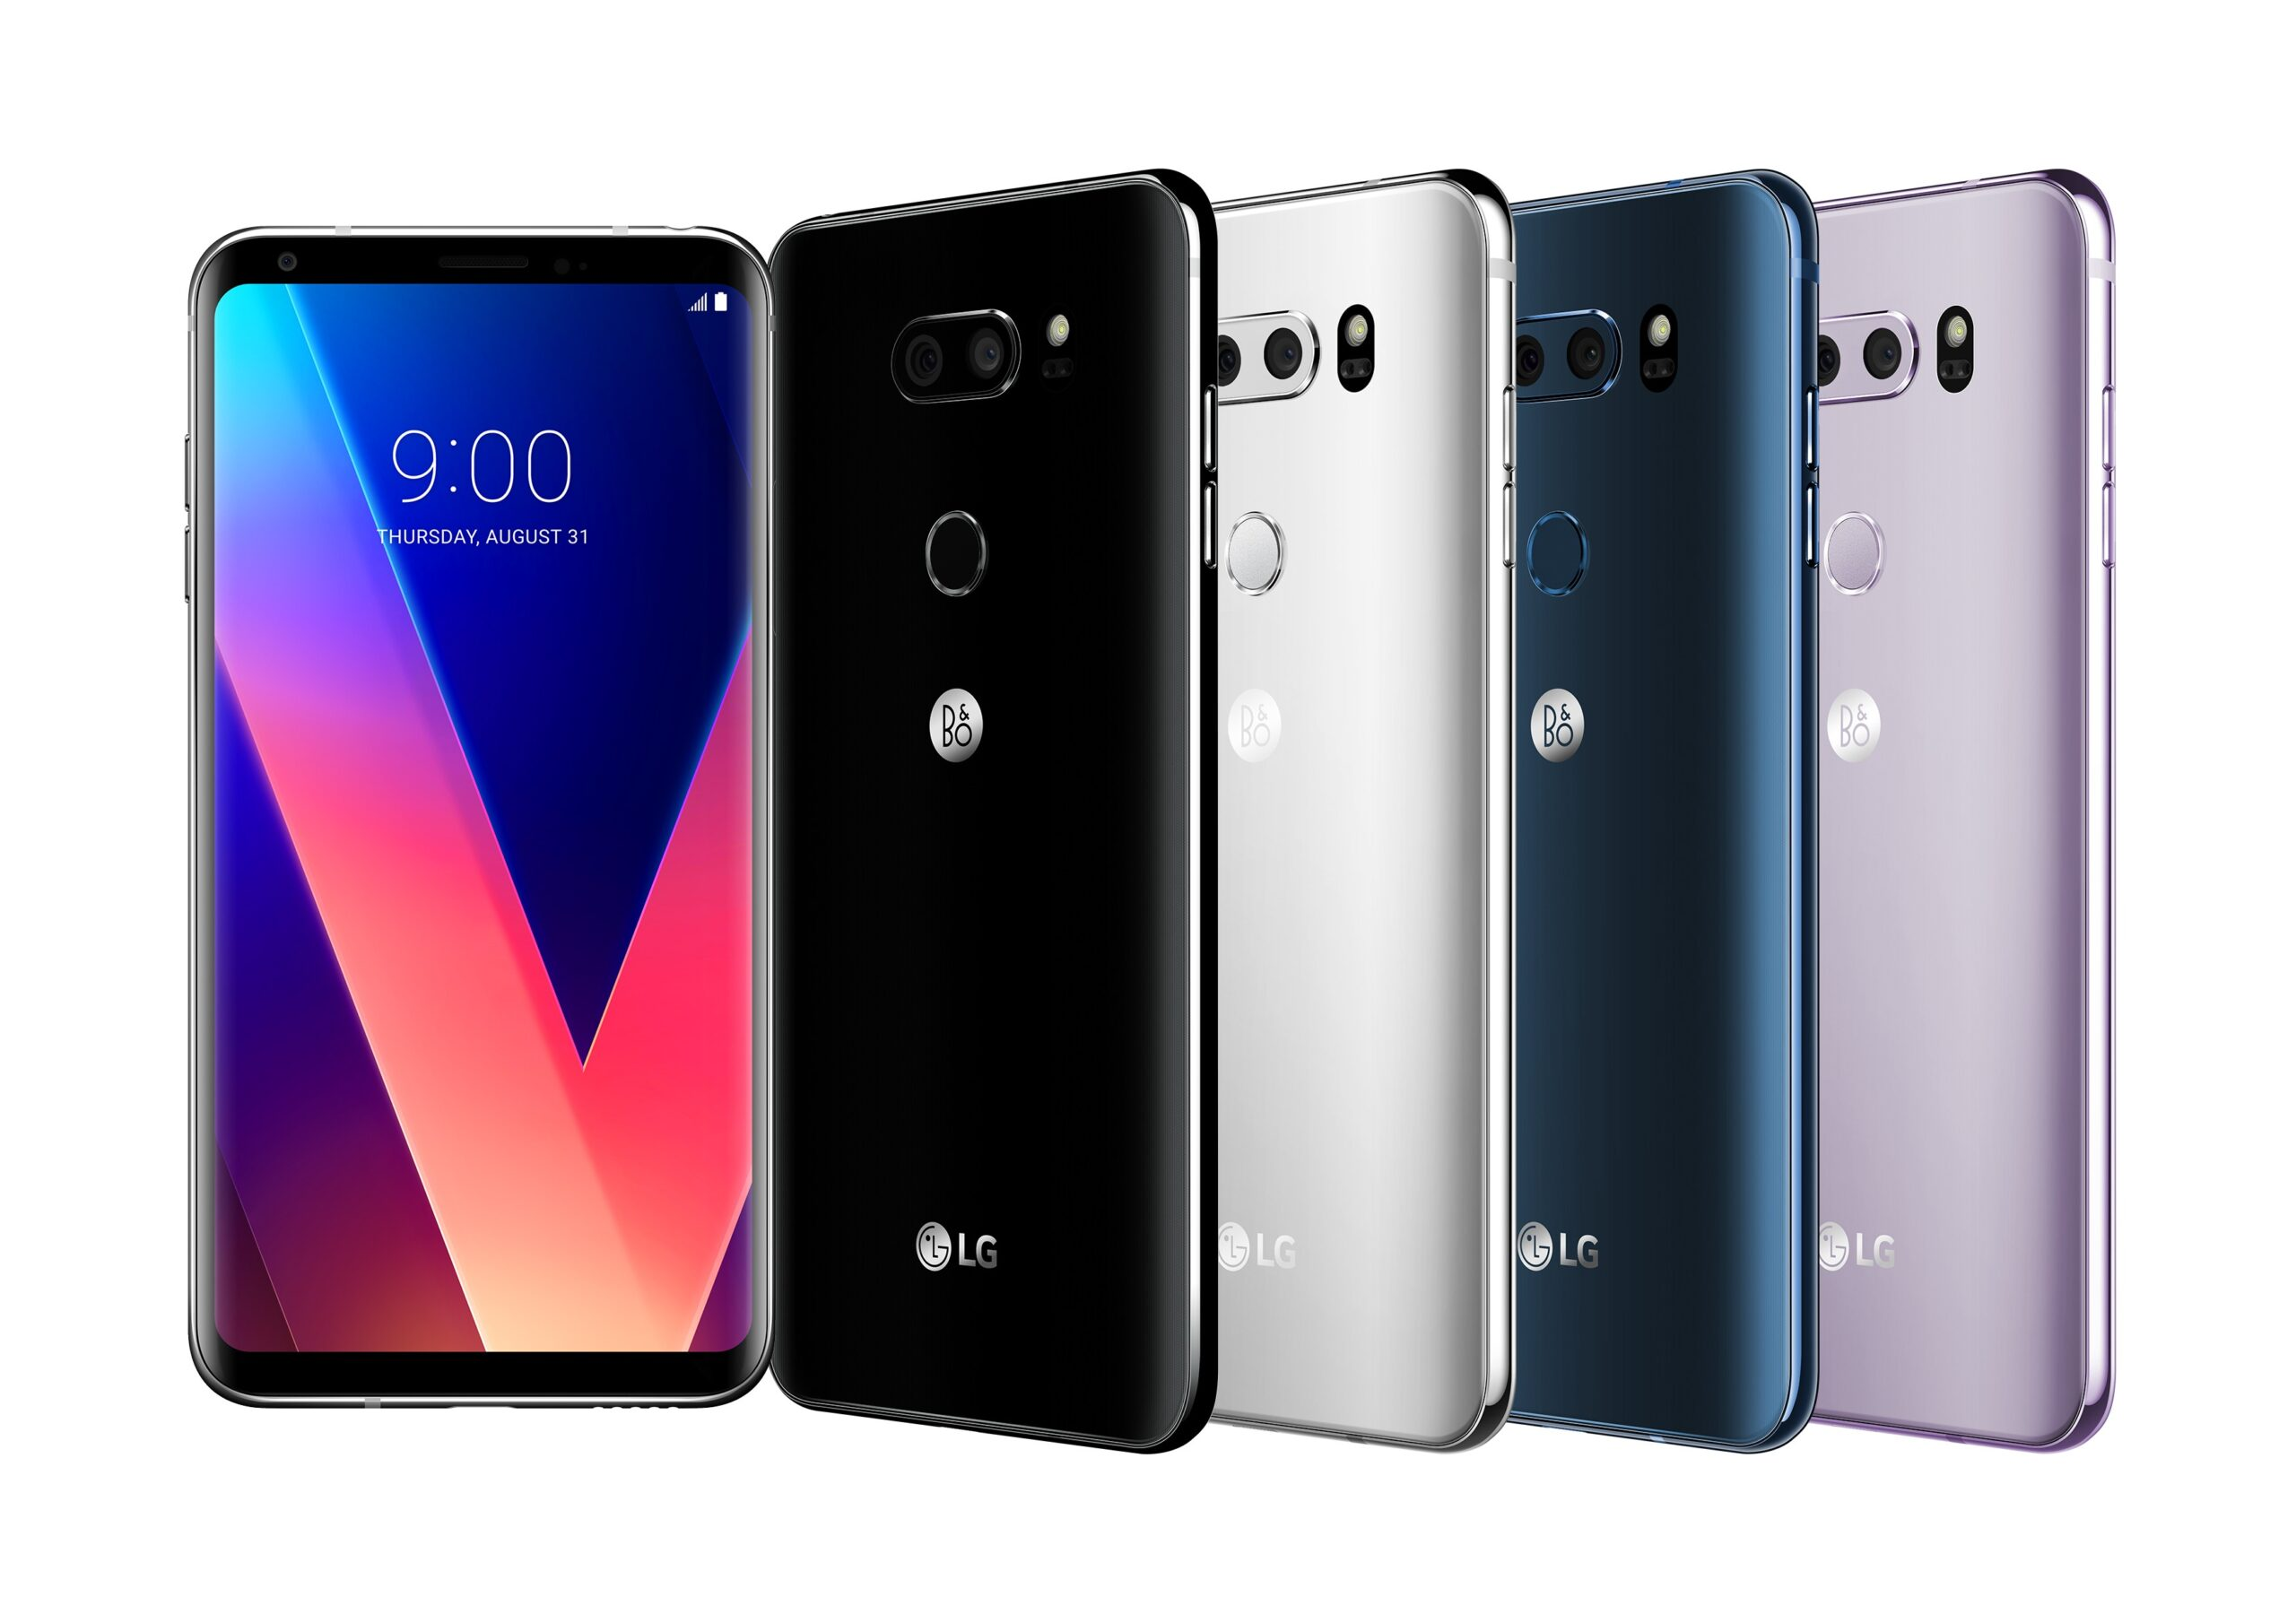 The front and back view of the LG V30 in Aurora Black, Cloud Silver, Moroccan Blue and Lavender Violet